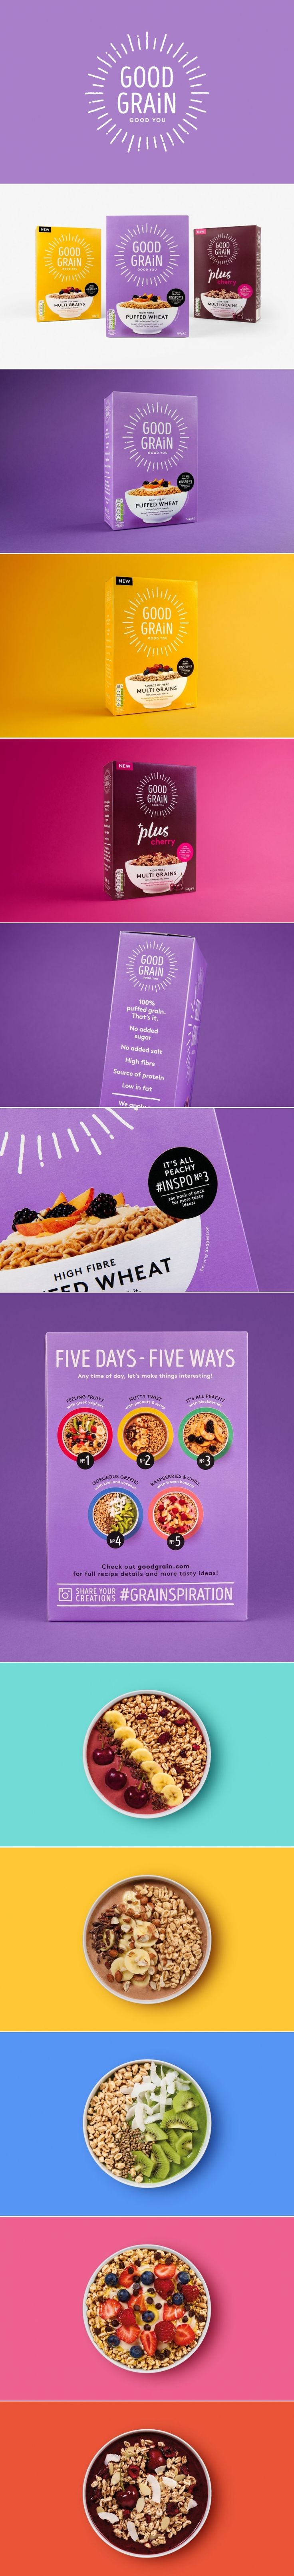 Good Grain Gets an Irresistible New Look That Will Cheer Up Your Breakfasts — The Dieline   Packaging & Branding Design & Innovation News